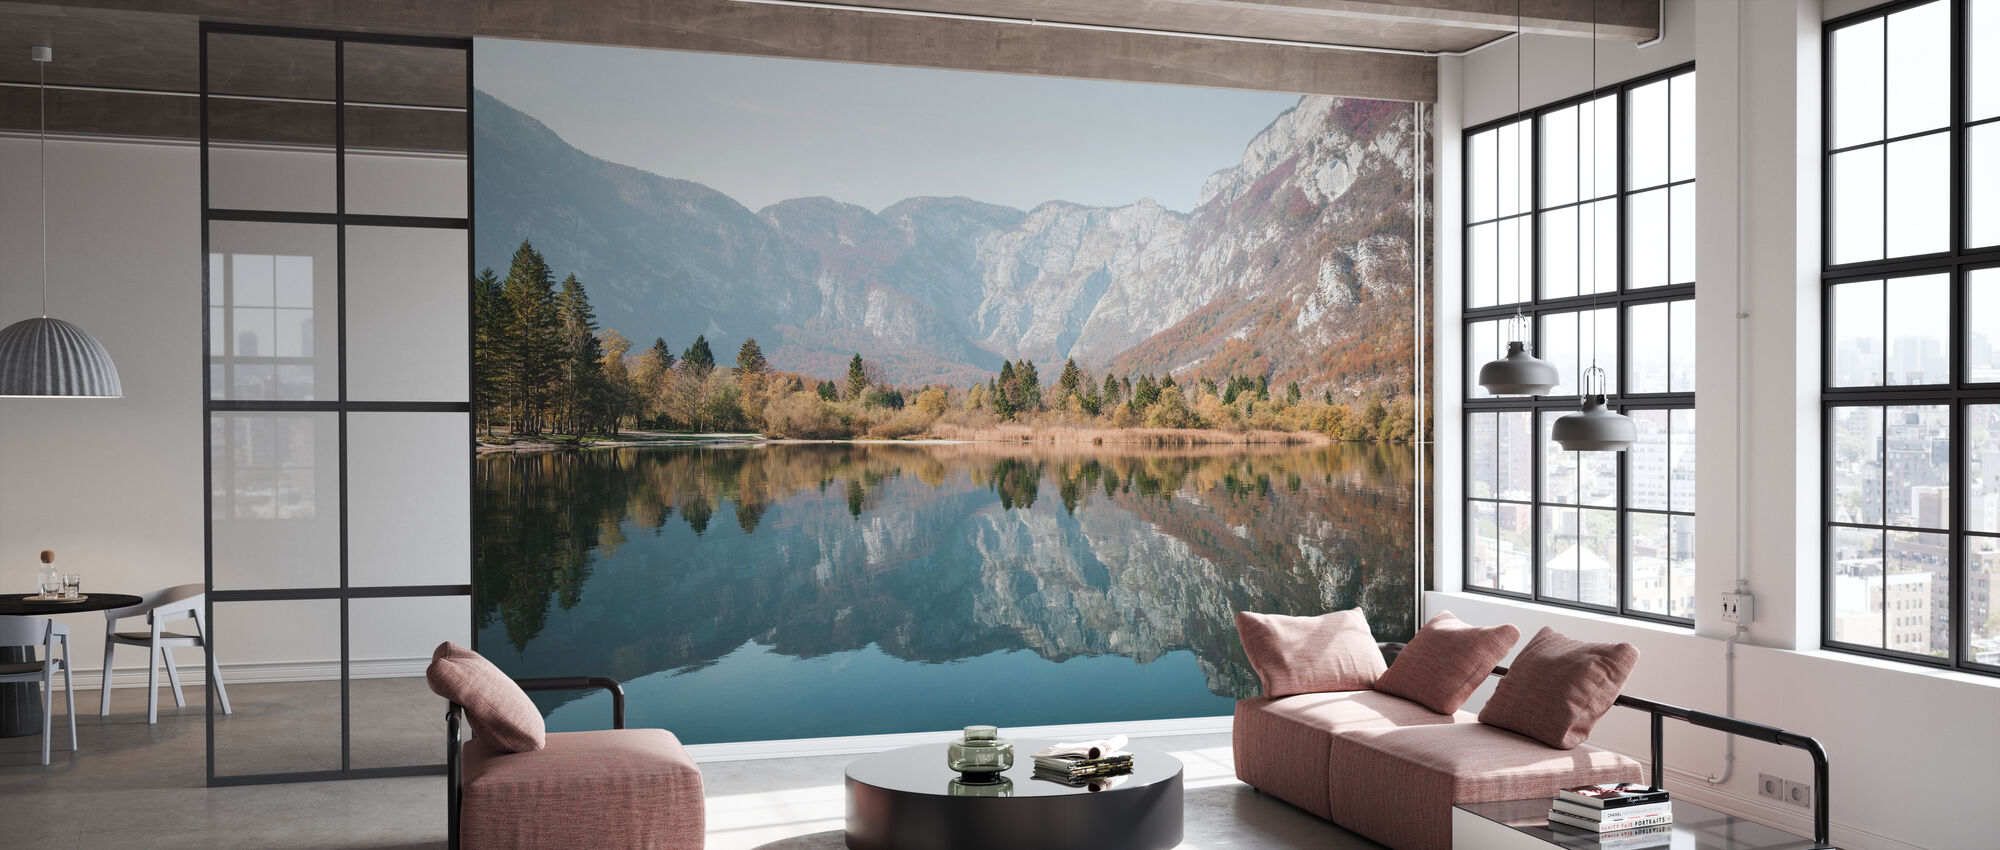 Mountain Reflections at Bohinj - Wallpaper - Office